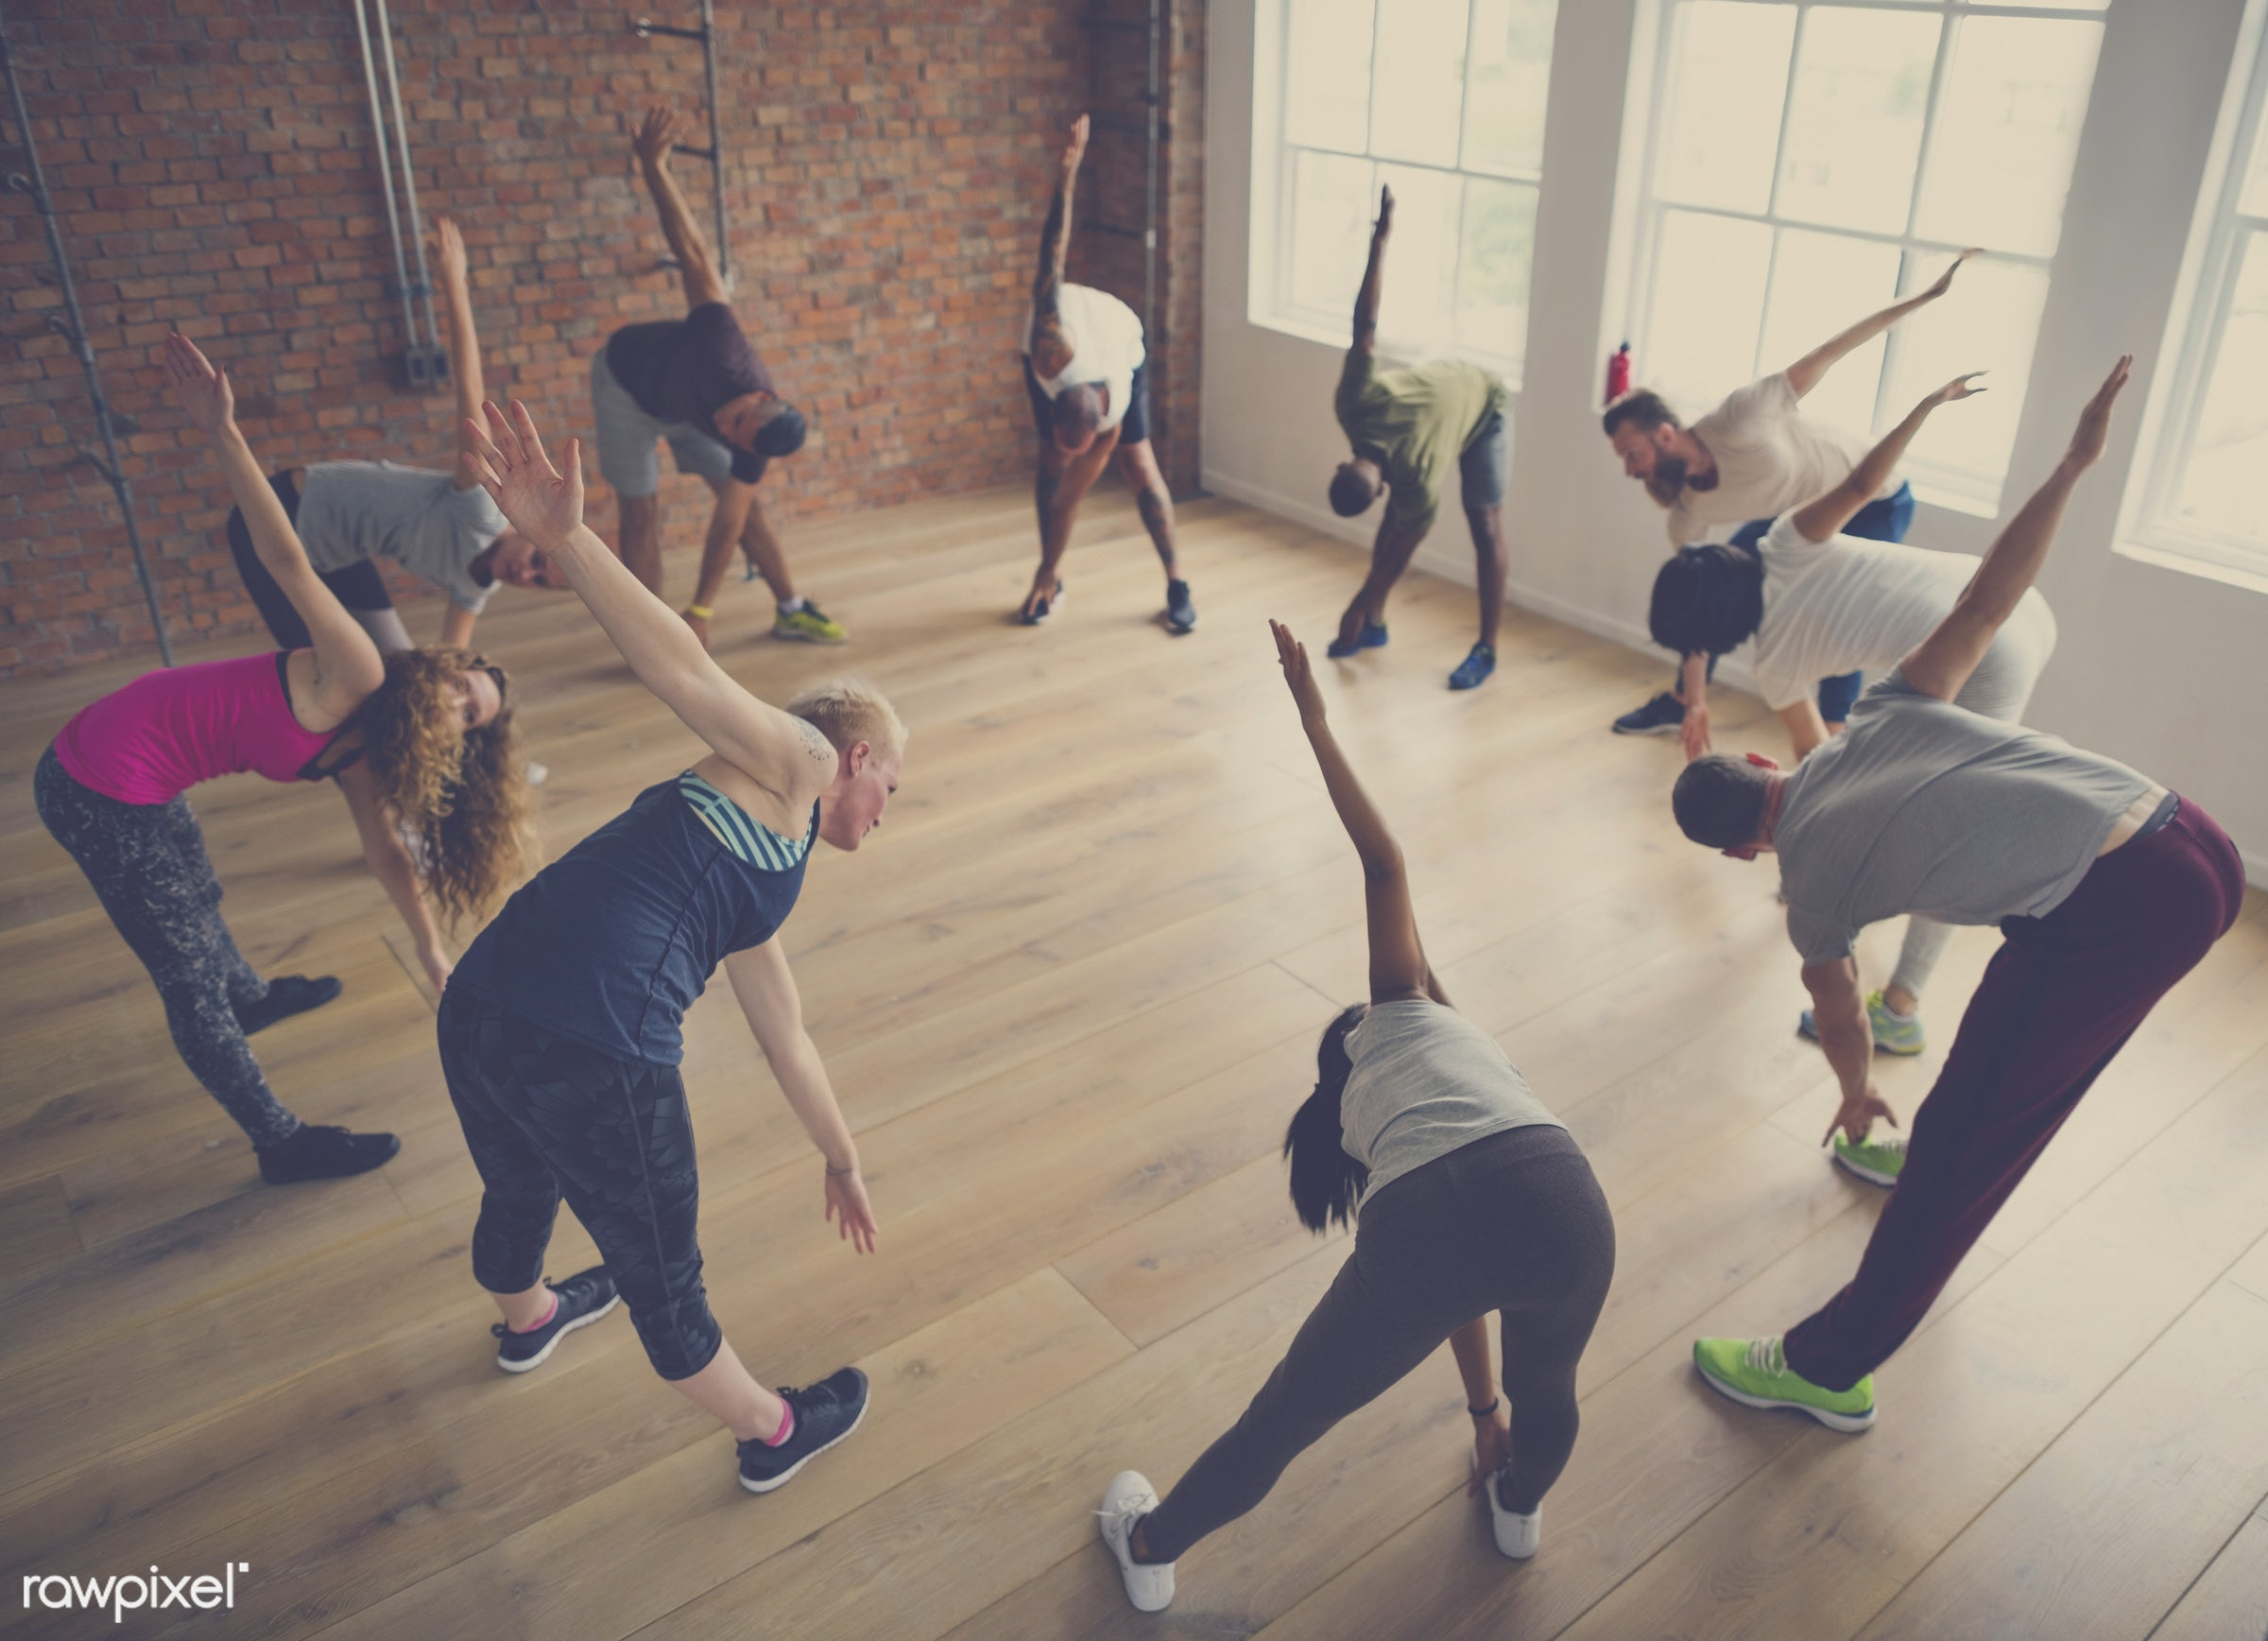 respiration, physical, diverse, relax, variation, recreation, people, stretching, together, balance, practicing, lifestyle,...